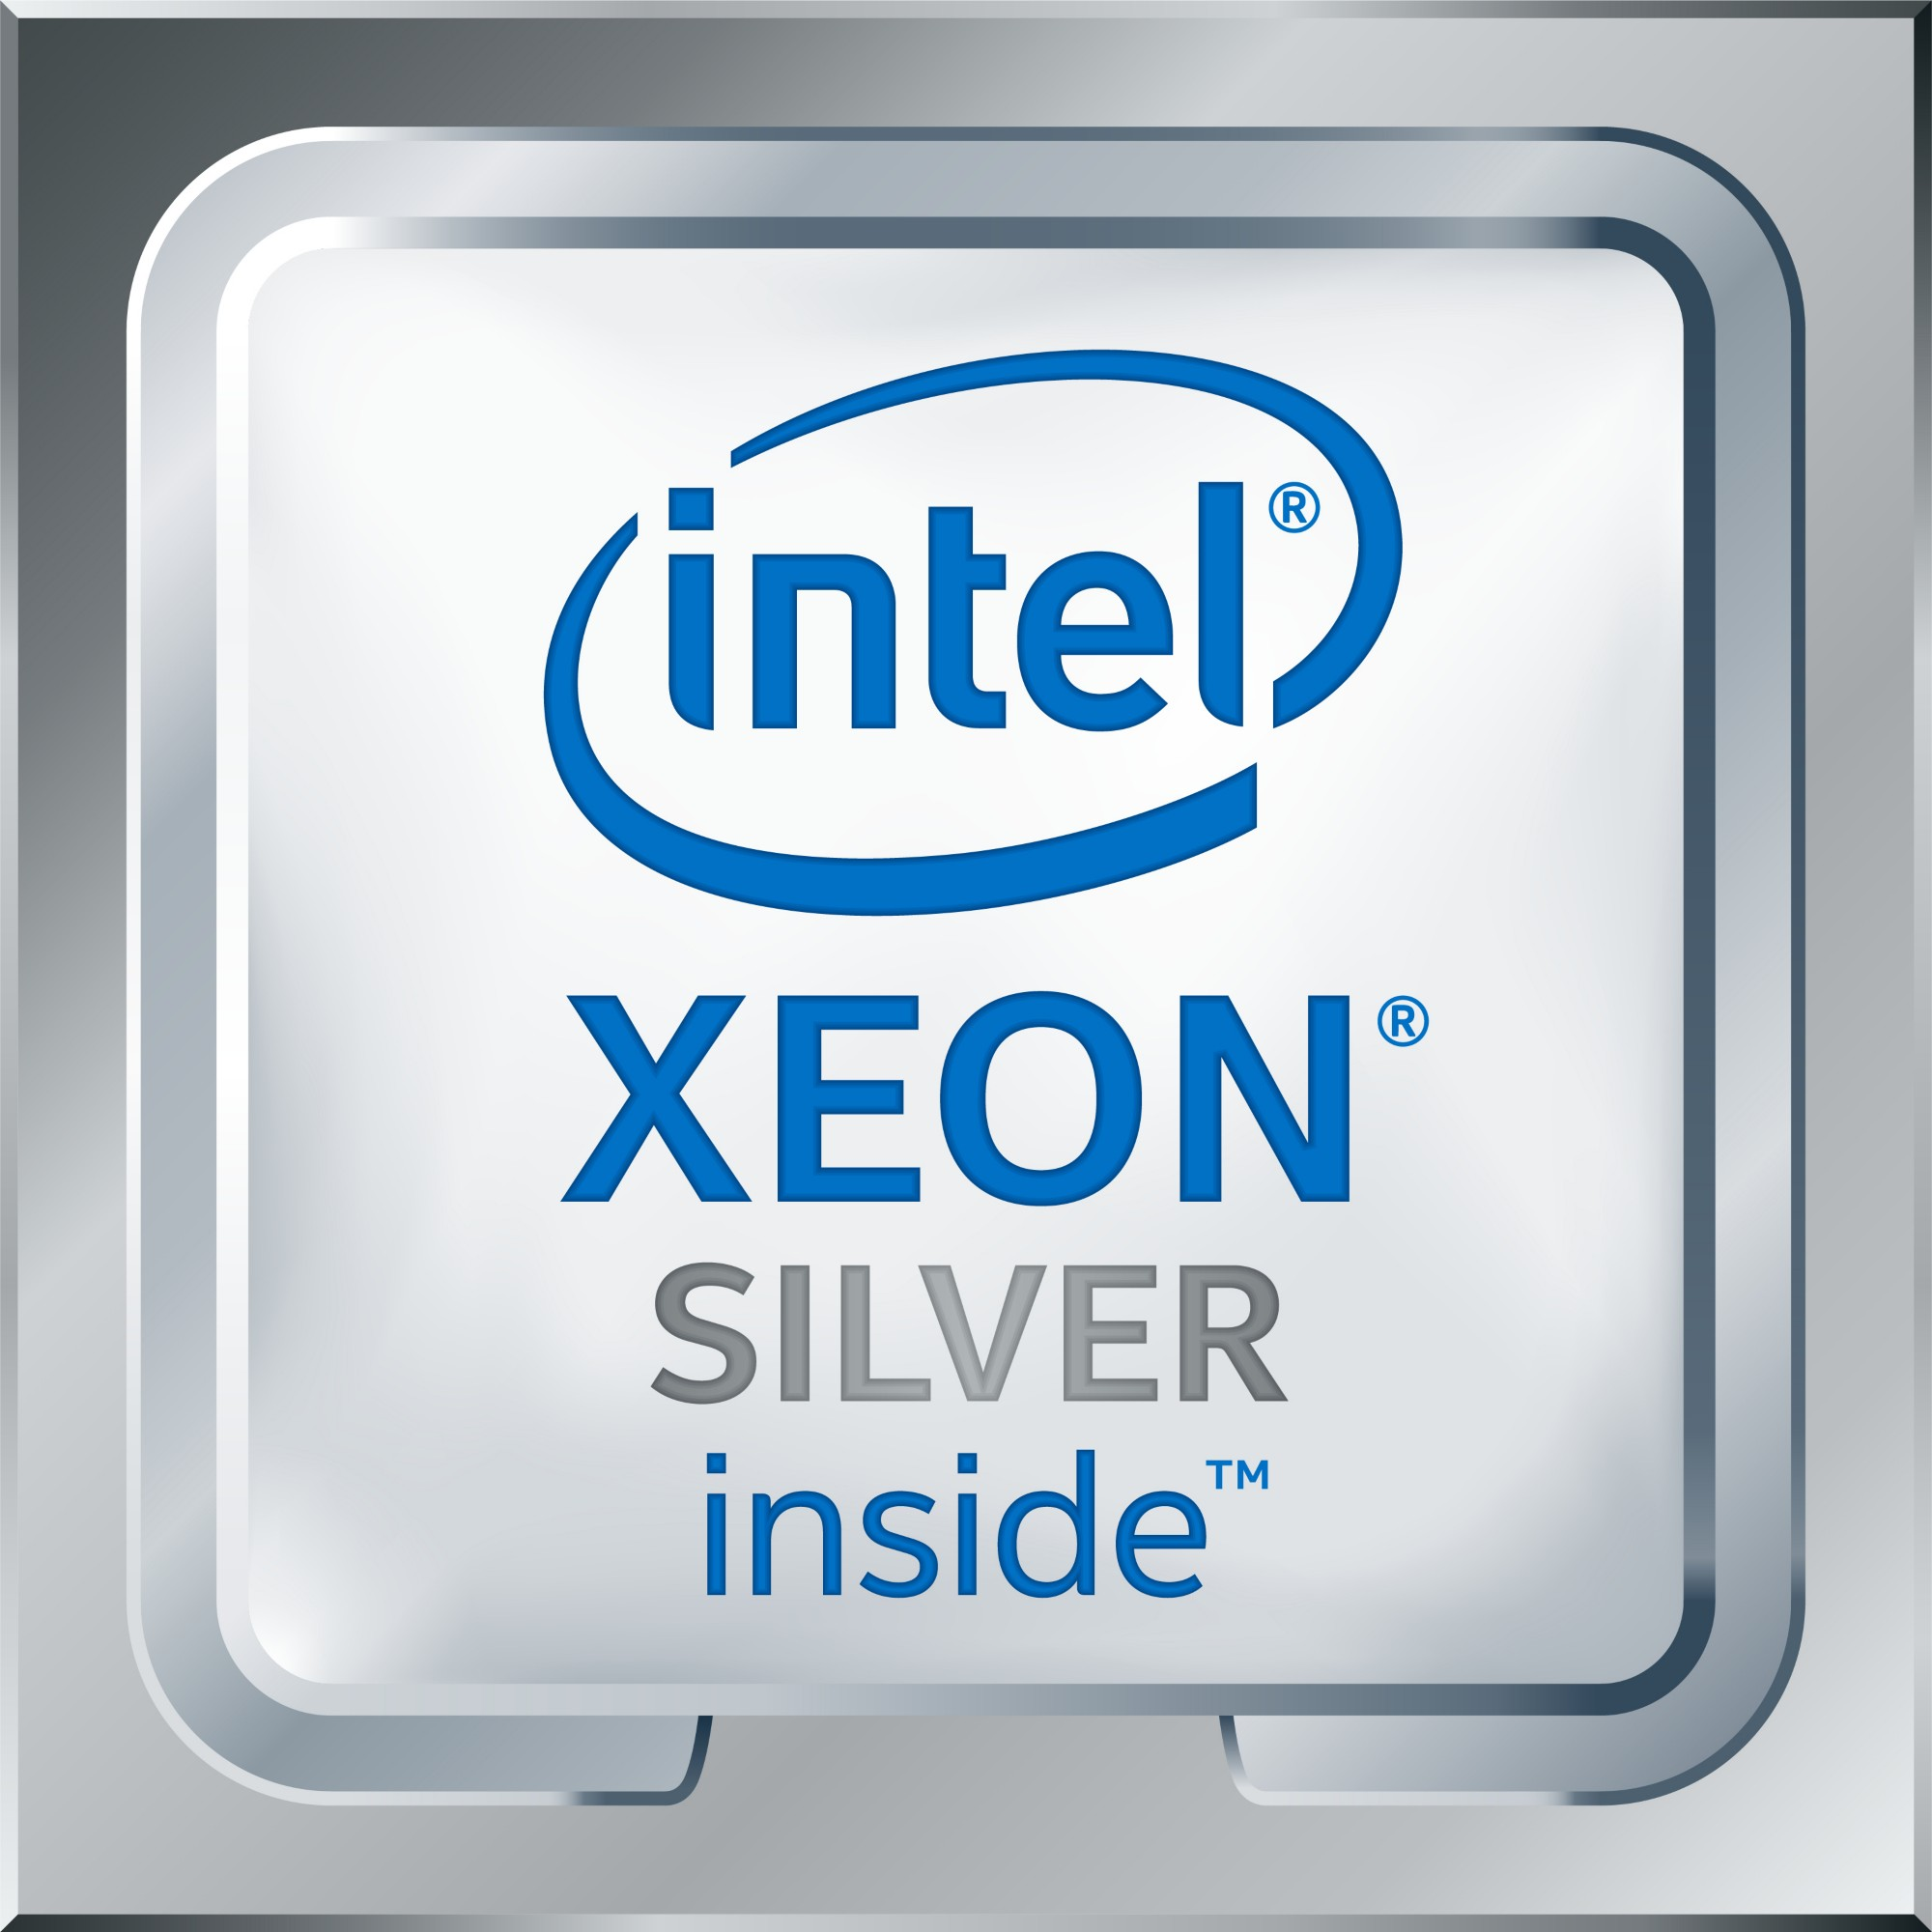 INTEL CD8067303561400 XEON SILVER 4110 PROCESSOR (11M CACHE, 2.10 GHZ) 2.10GHZ 11MB L3